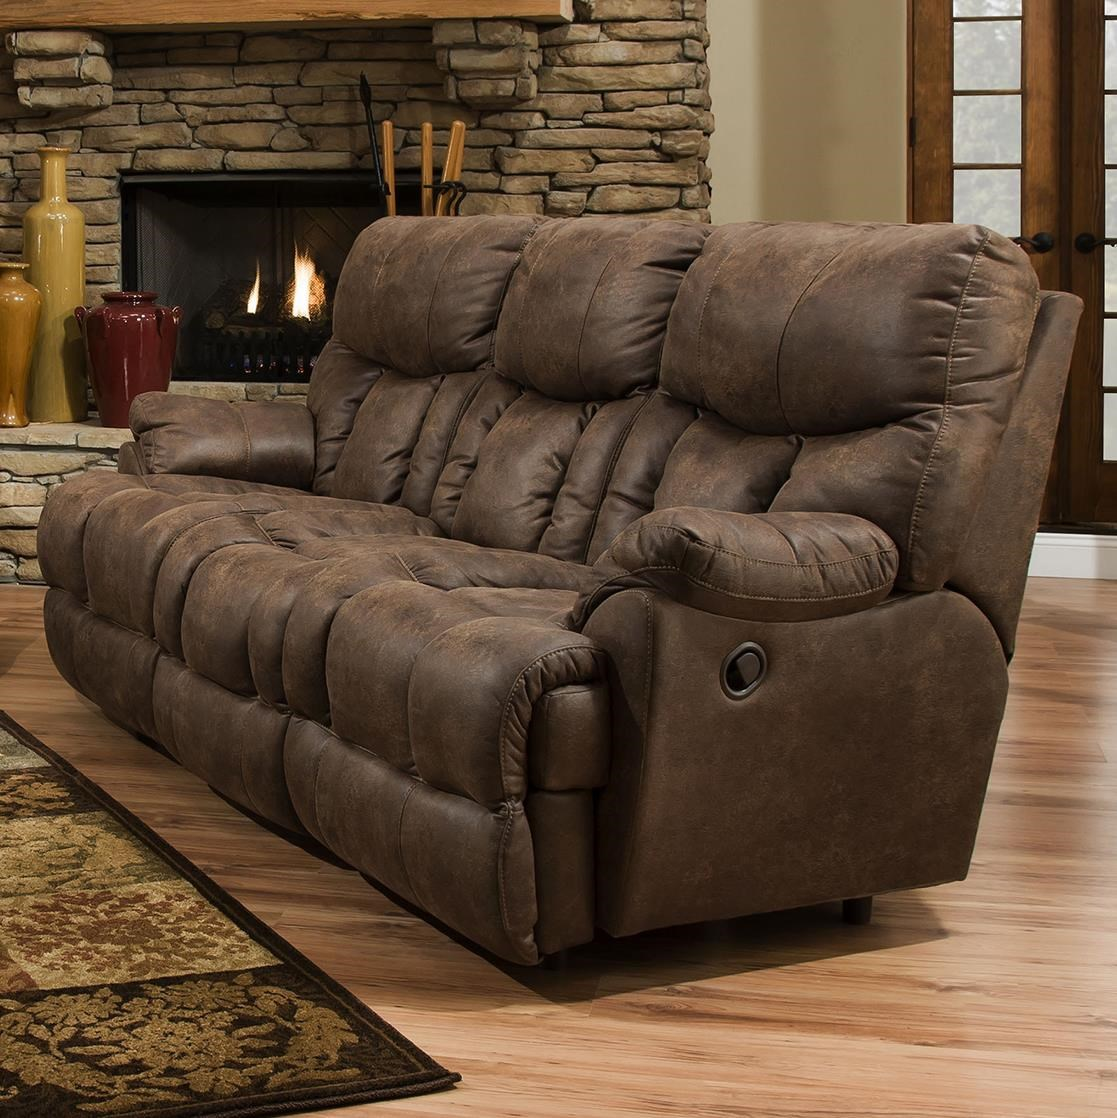 Franklin Mammoth Reclining Sofa With Extra Tall And Wide Seats - Extra Wide Couch